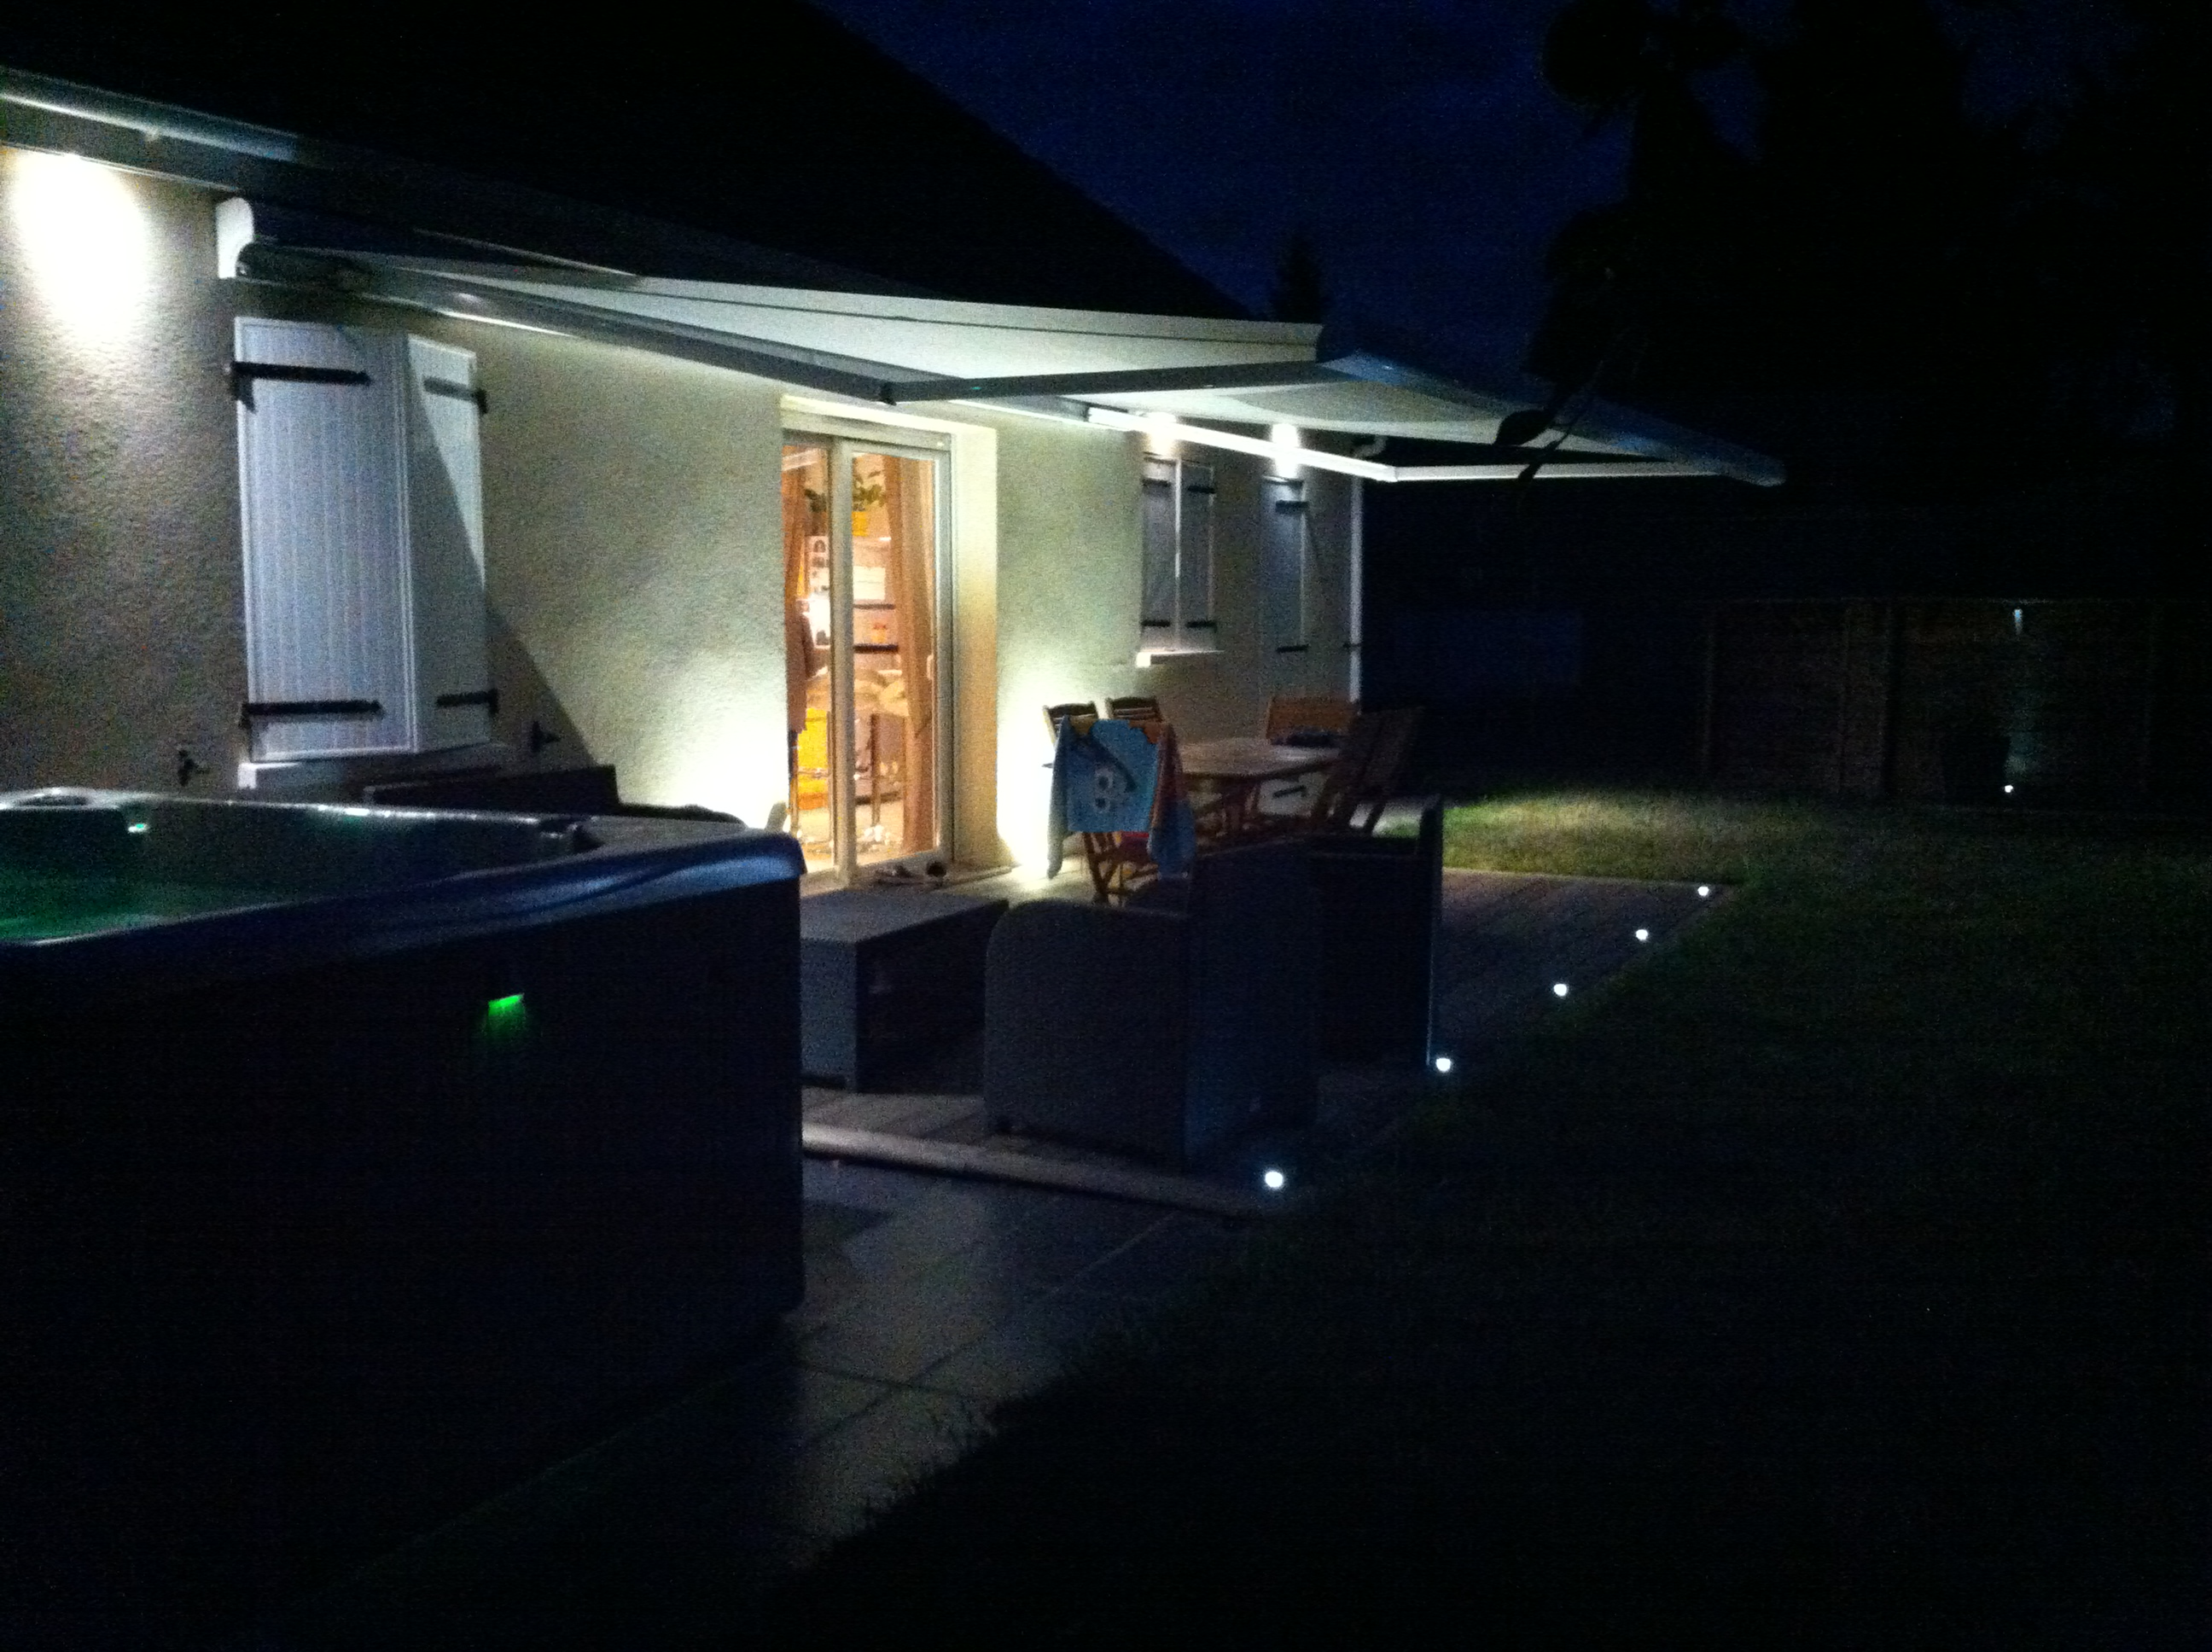 Clairage terrasse led eclairage ext rieur for Eclairage a led exterieur